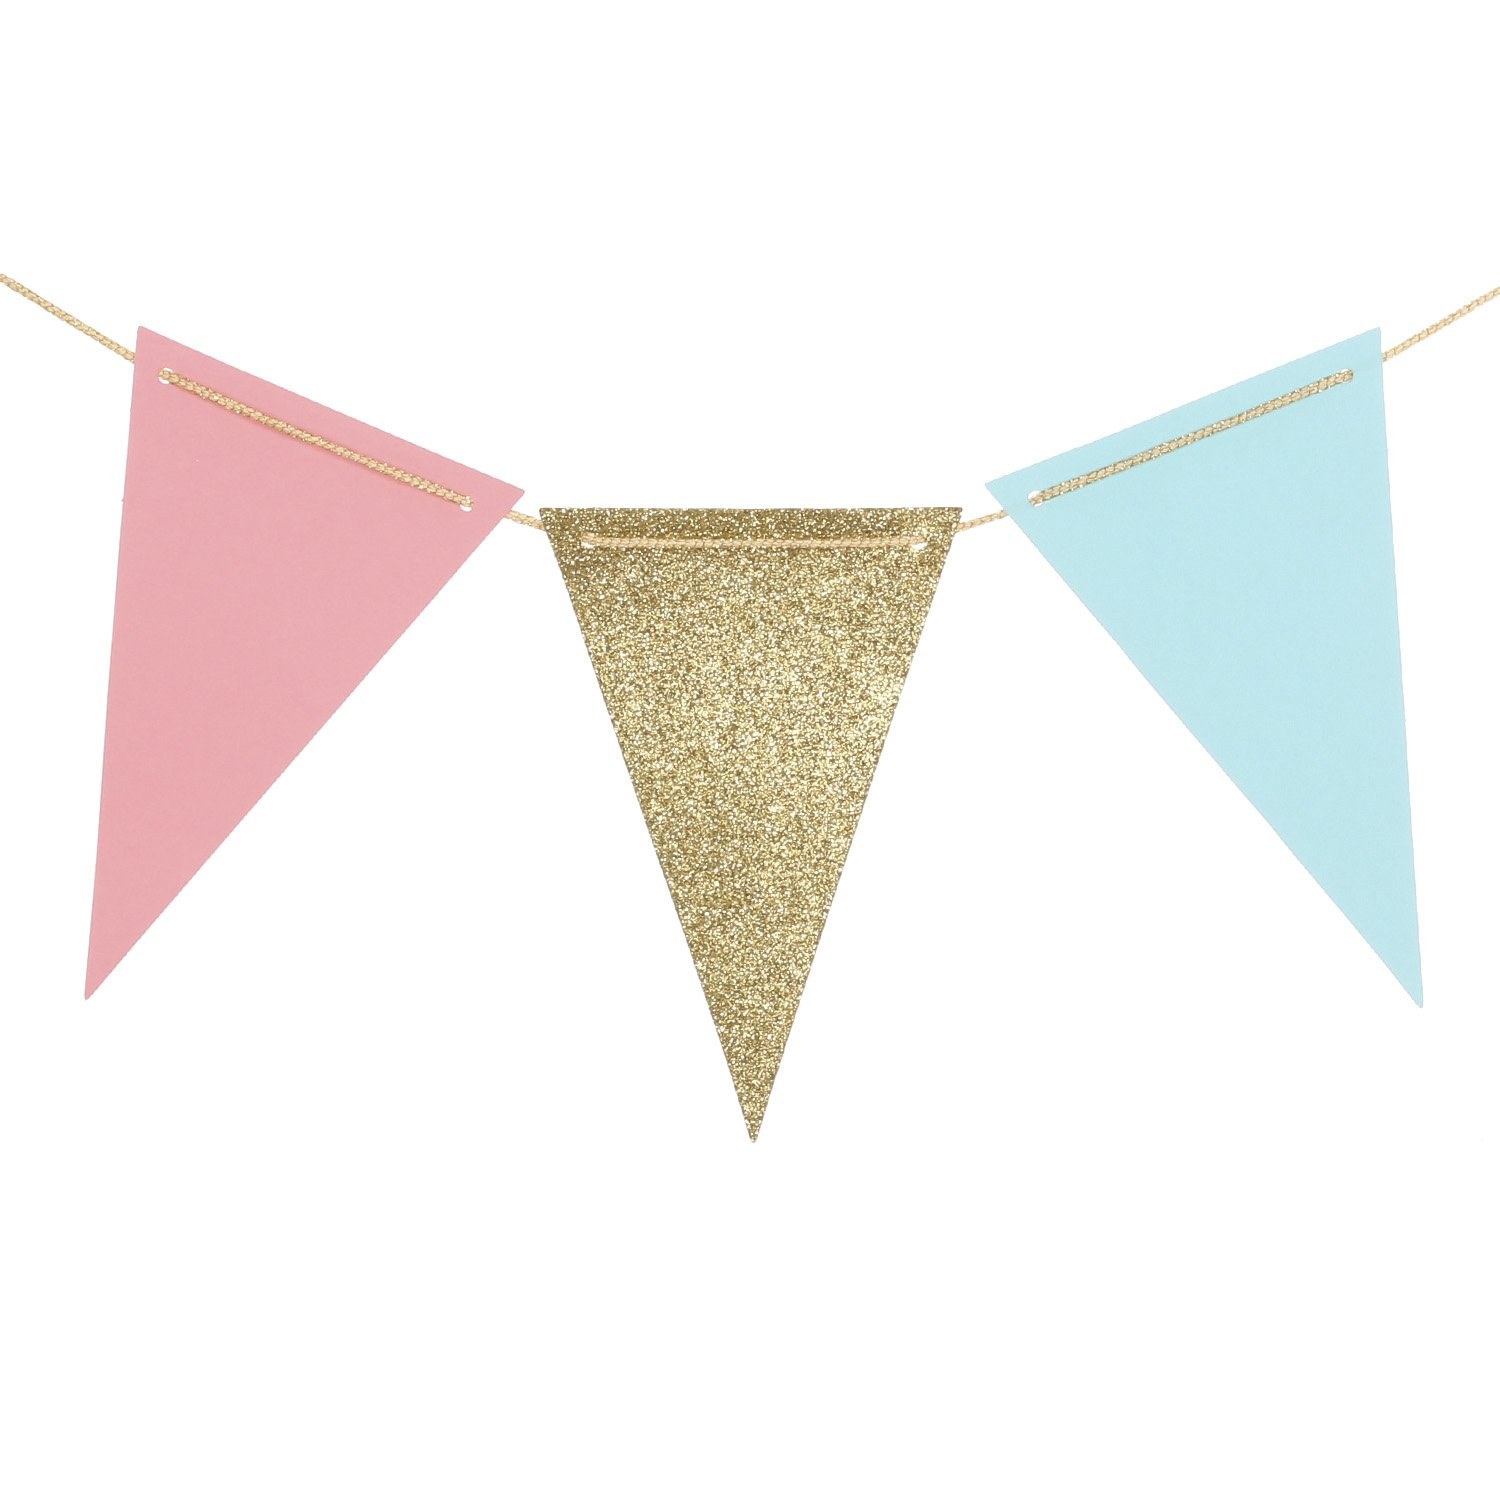 He Or She What Will It Be Banner Gender Reveal Party Flag Lings Moment 10 Feet Paper Pennant Triangle Garland Vintage Glitter Gold Pink Blue